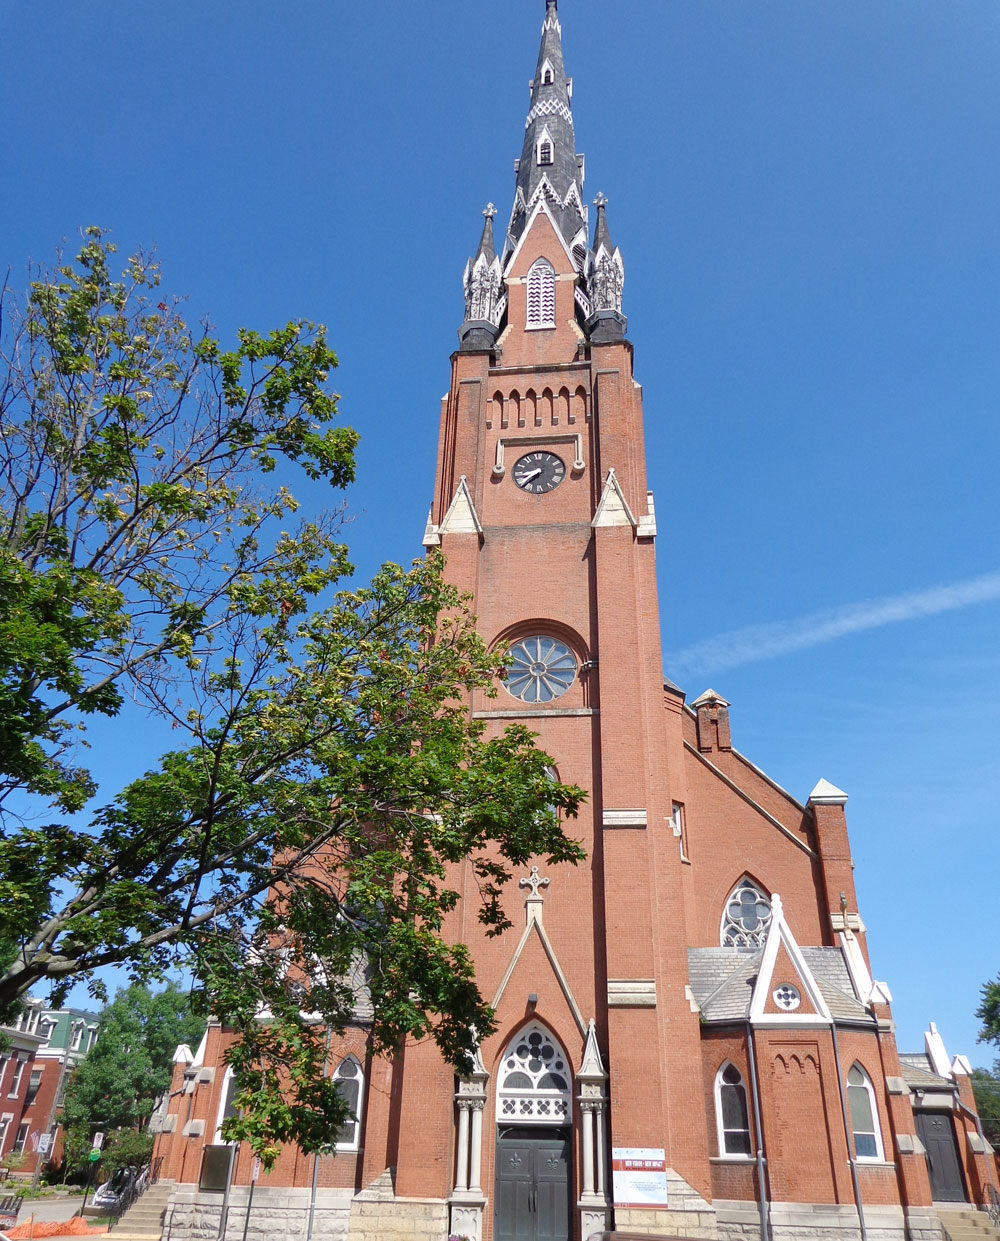 Former St. Mary's Church - Steeple Square - Dubuque, Iowa